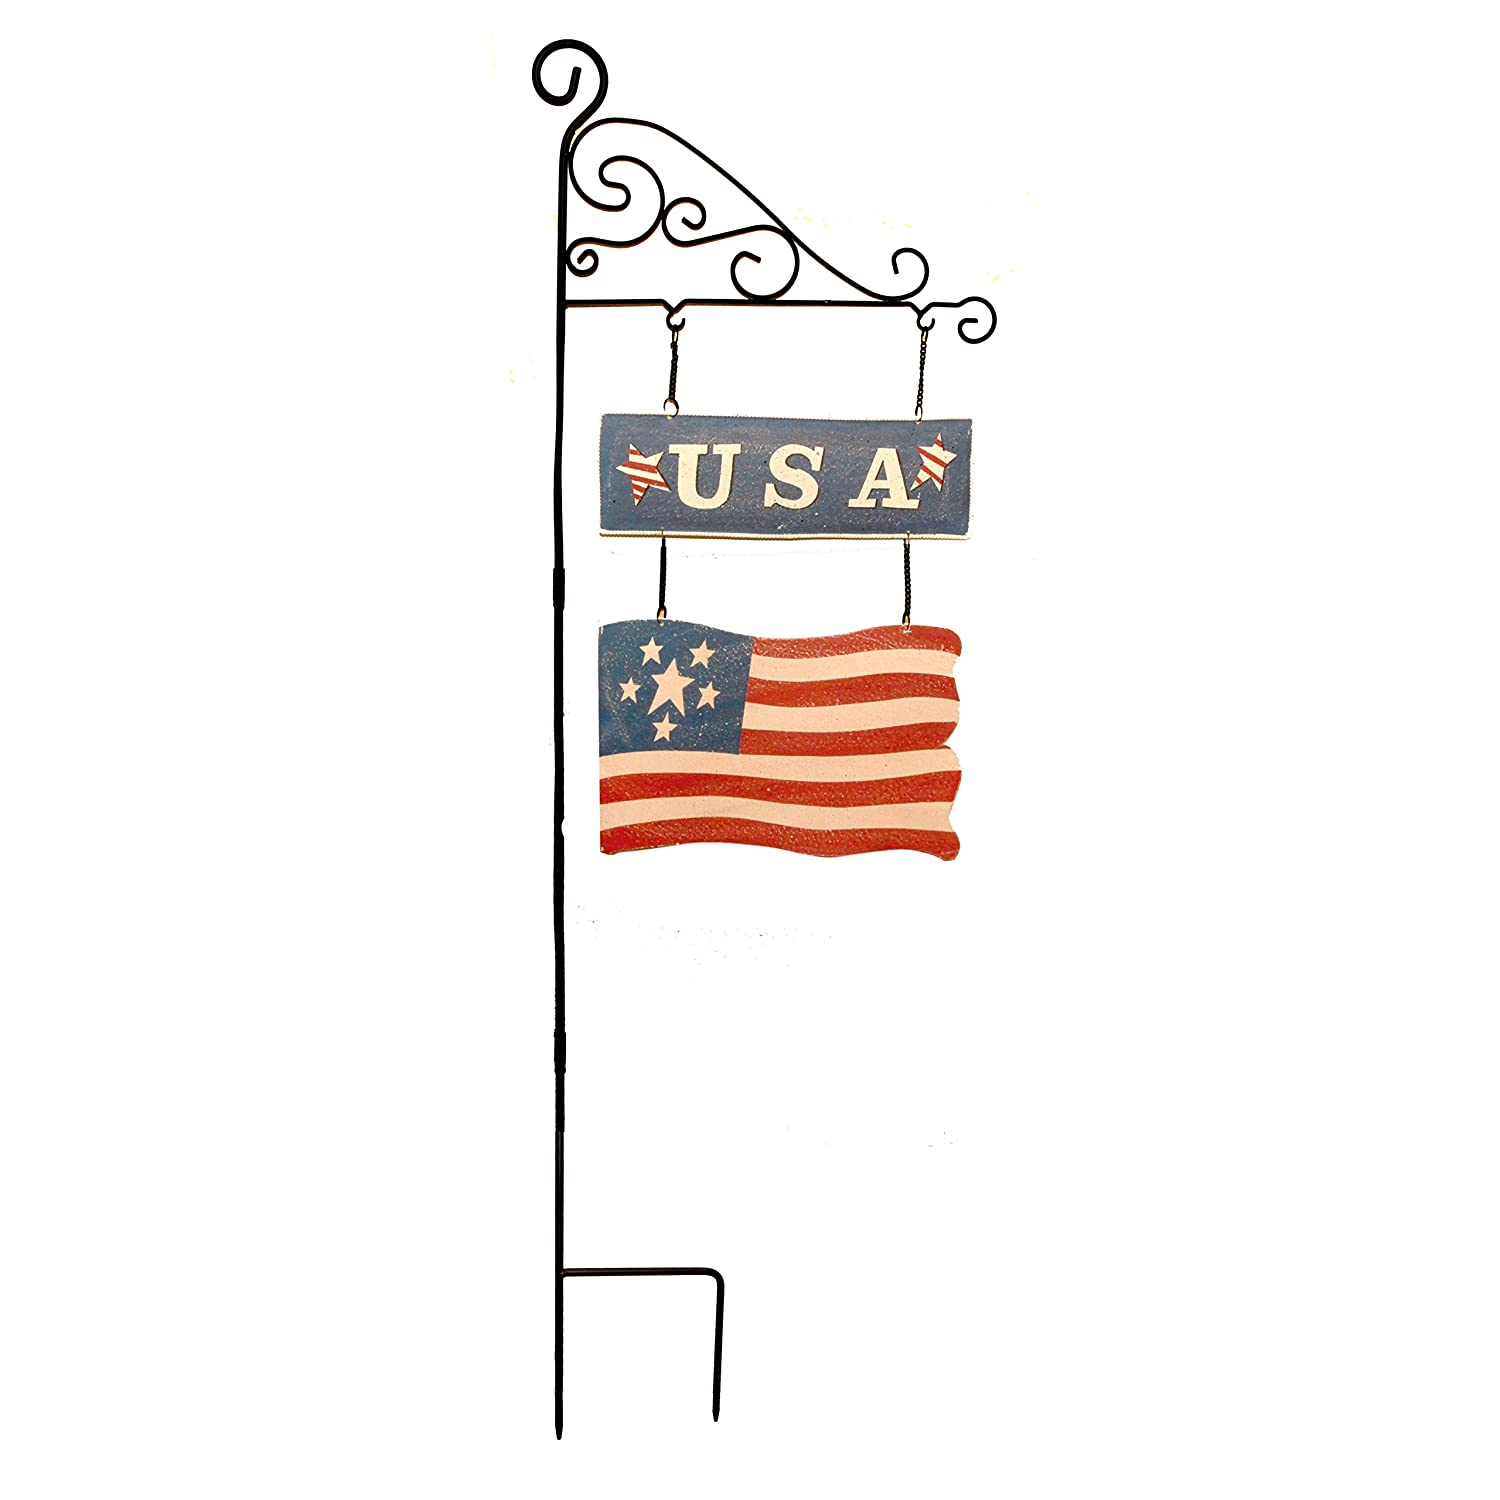 Patriotic USA Flag Metal 43 Inch Garden Stake Yard Decor Show Your  Patriotic Pride With This Colorful Metal USA Flag Stake! Once Placed In The  Ground, ...